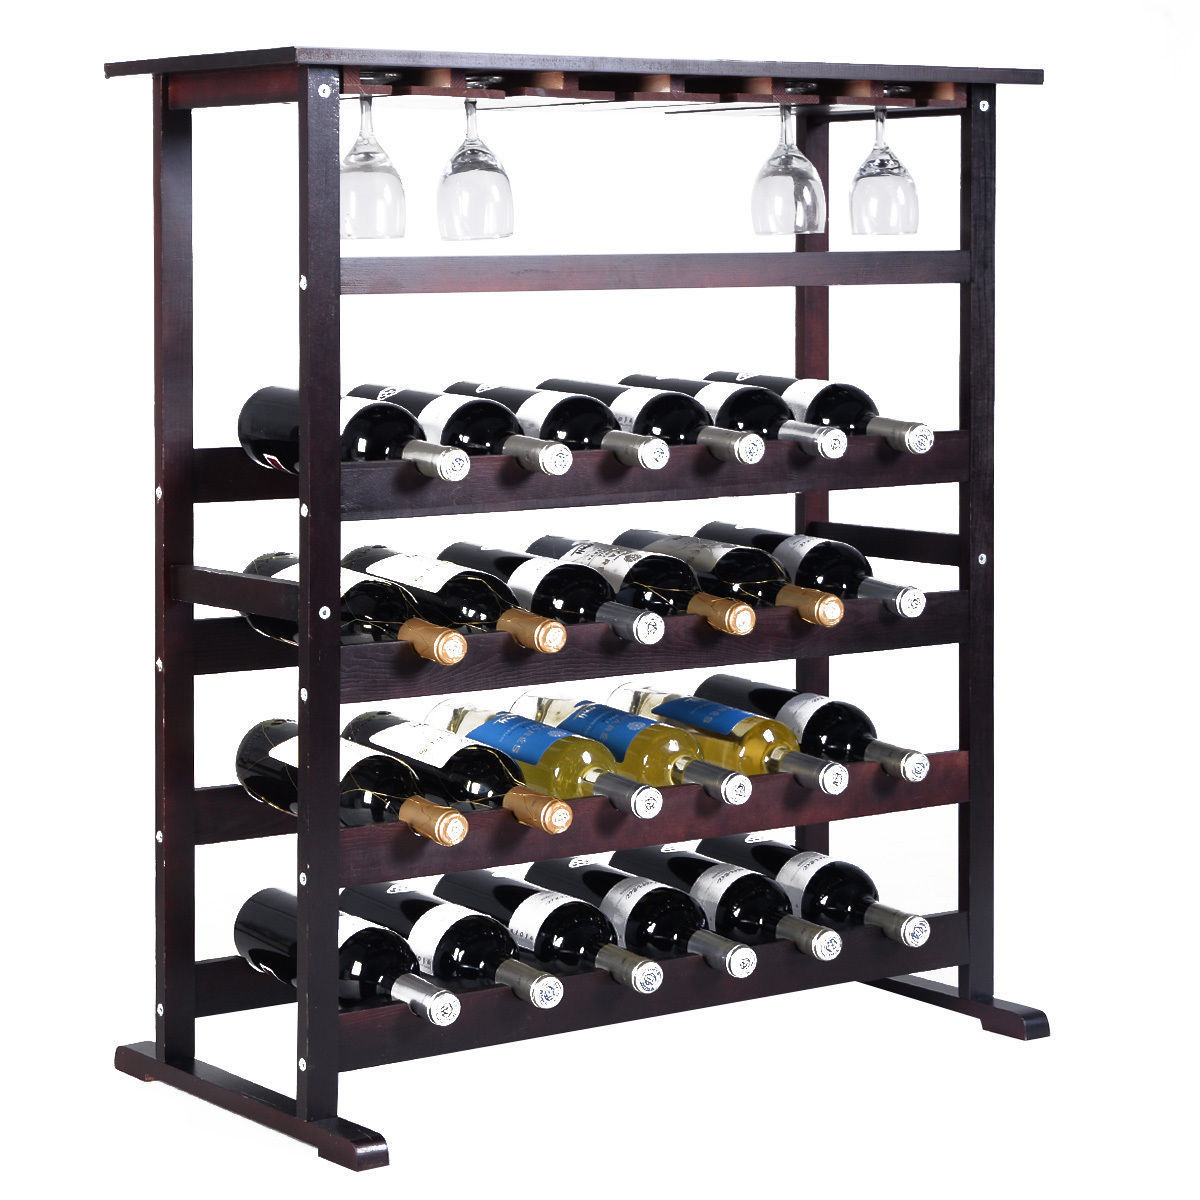 Costway 24 Bottle Wood Wine Rack Holder Storage Shelf Display w  Glass Hanger by Costway